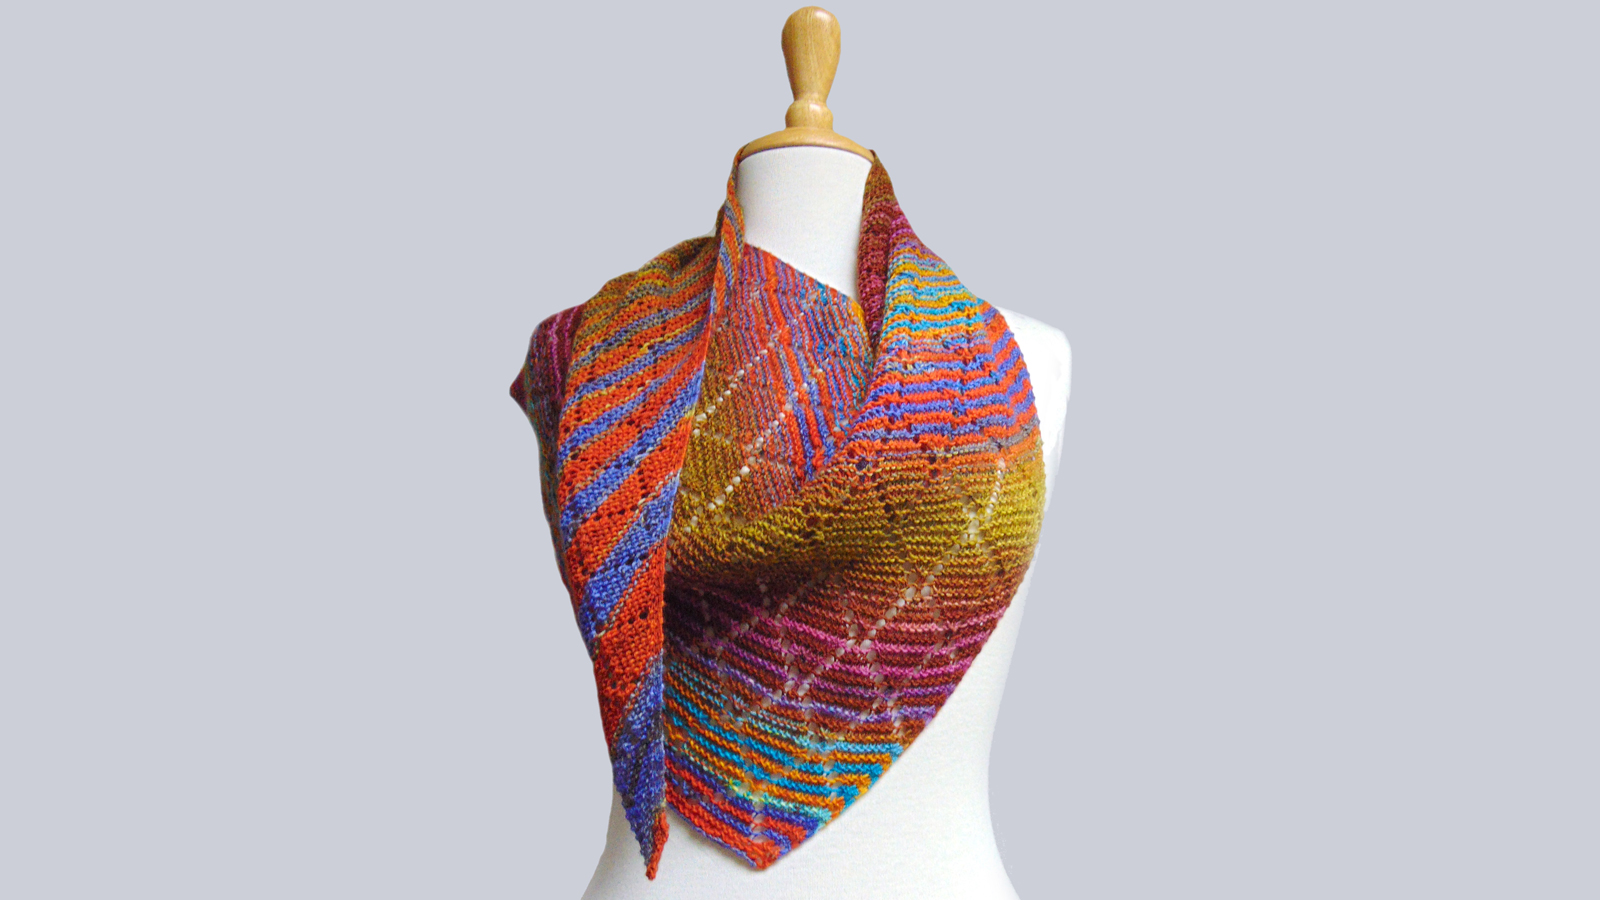 Jacinta Shawl by Ambah O'Brien